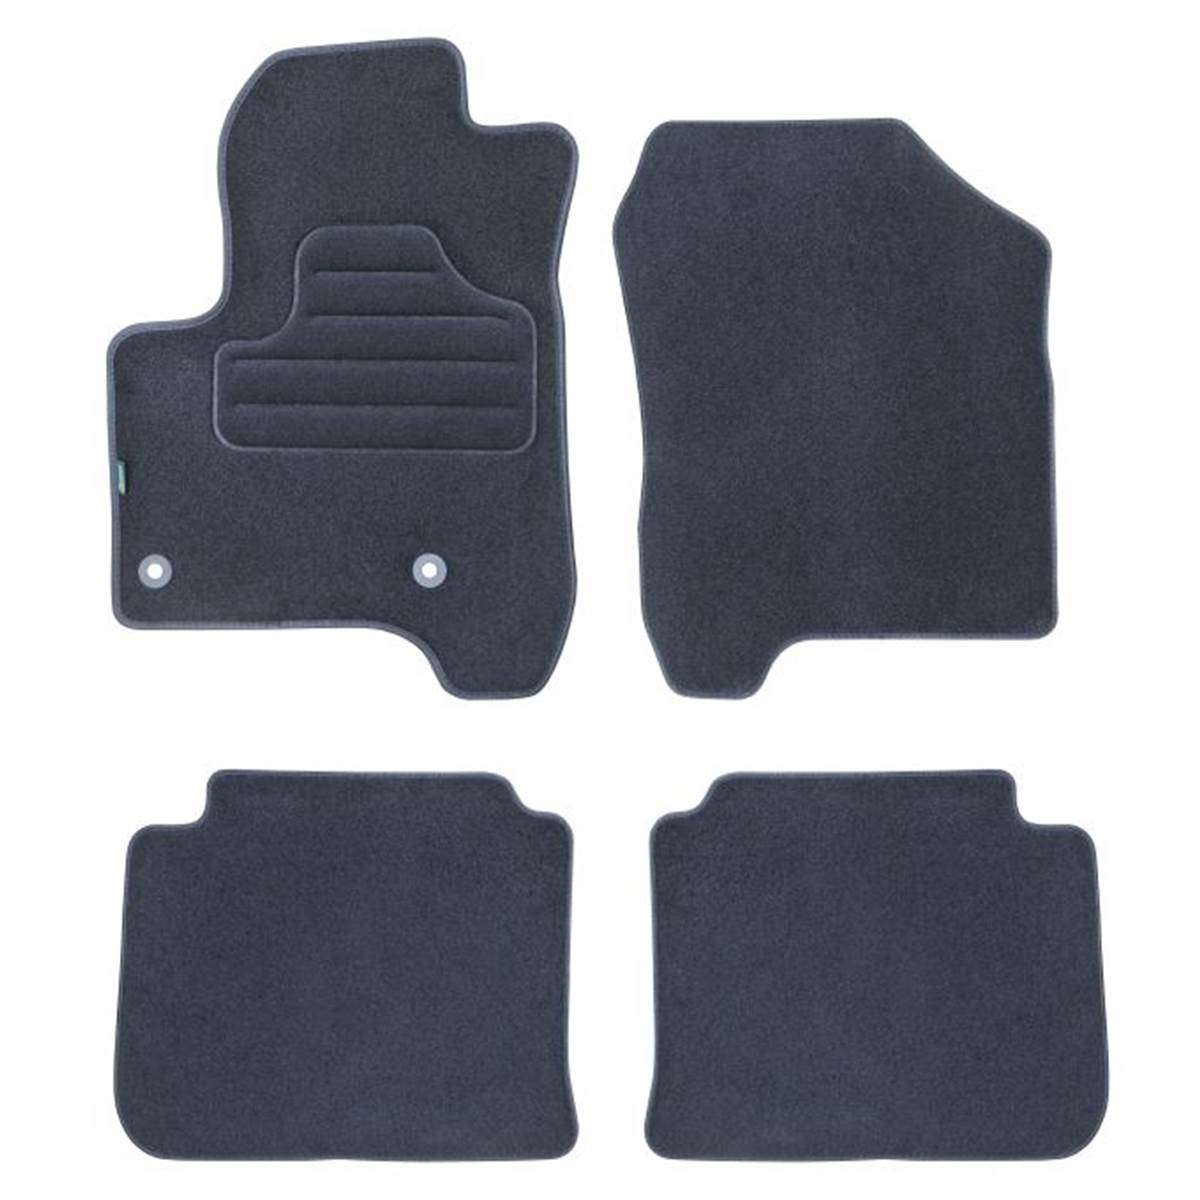 tapis c4 cactus citroen c4 cactus tapis de sol caoutchouc tapis caoutchouc pour citro n c4. Black Bedroom Furniture Sets. Home Design Ideas